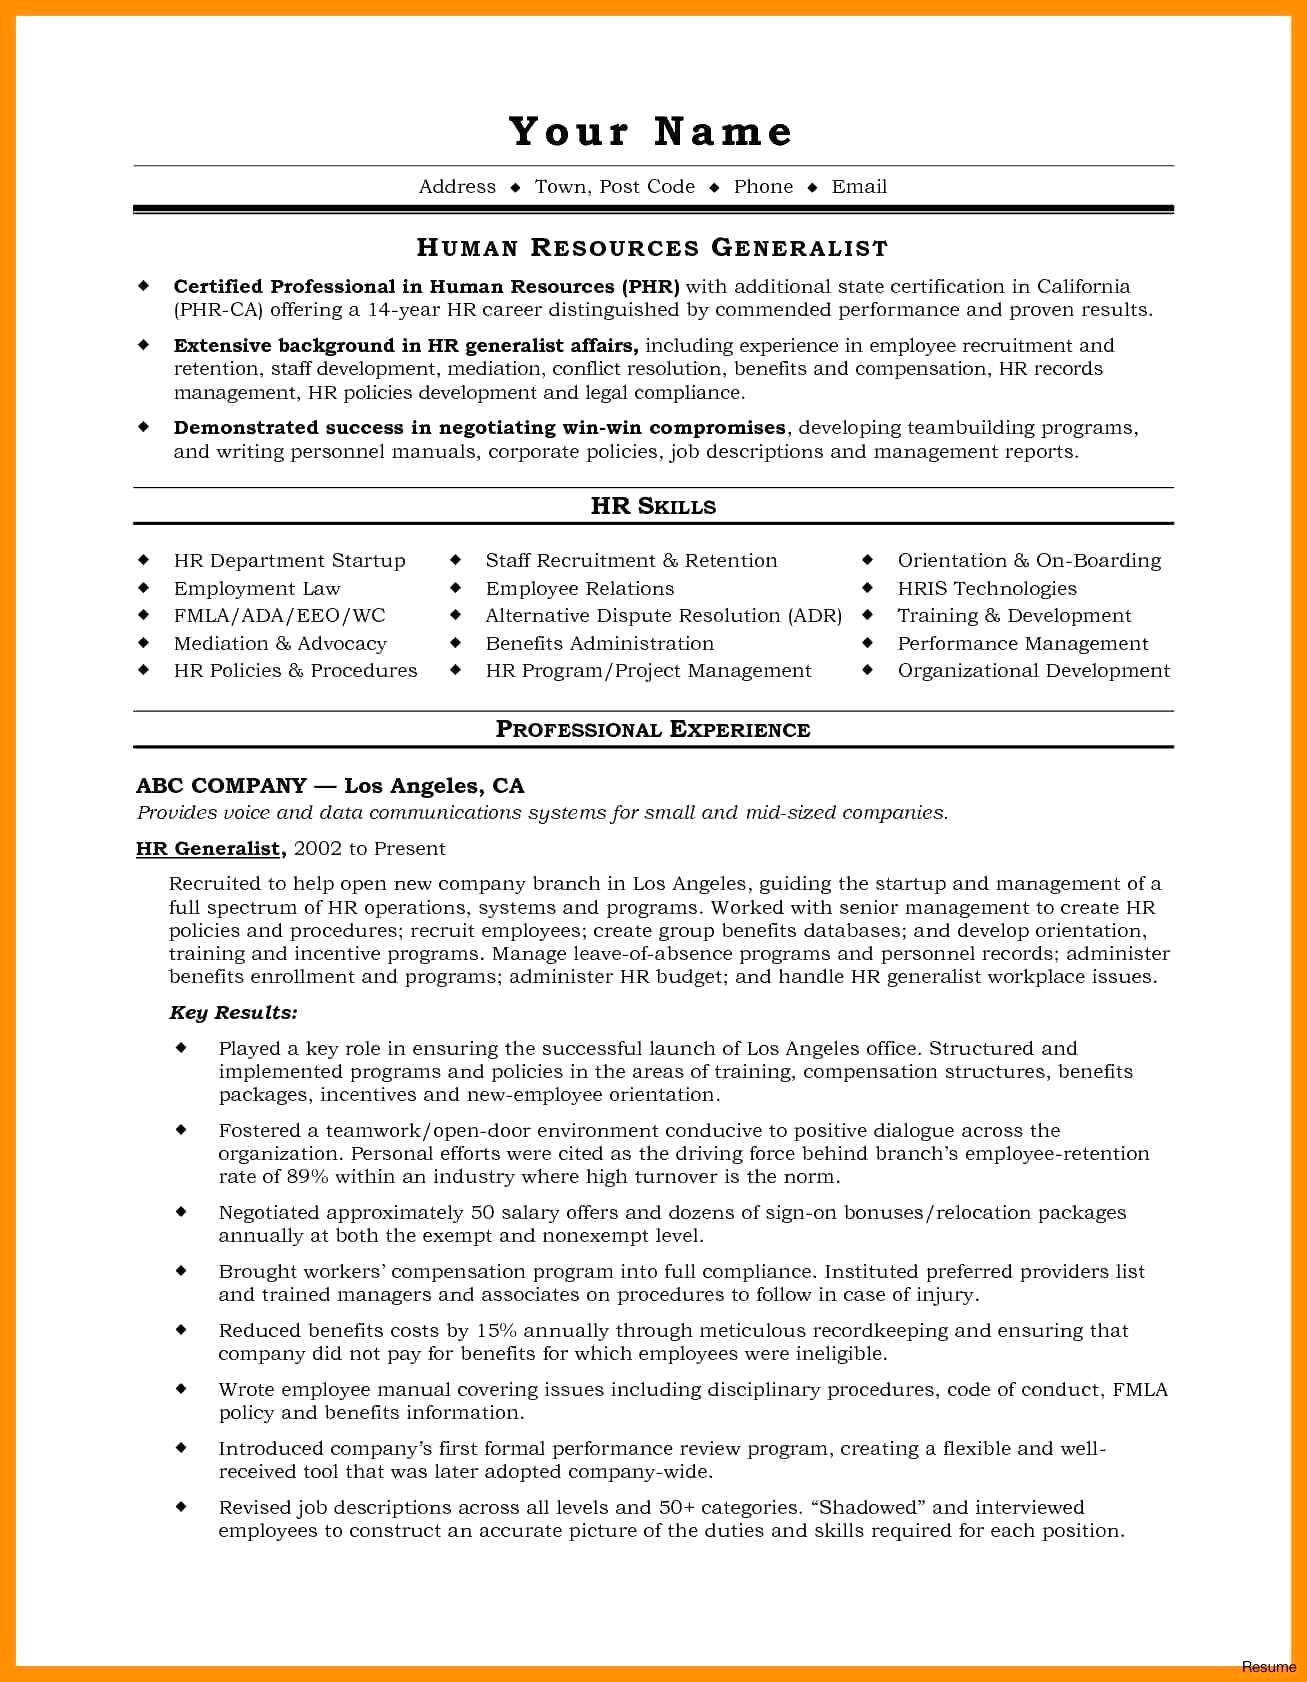 Resume Posting Sites - How to Start A Resume Awesome for It Job Unique Best Examples